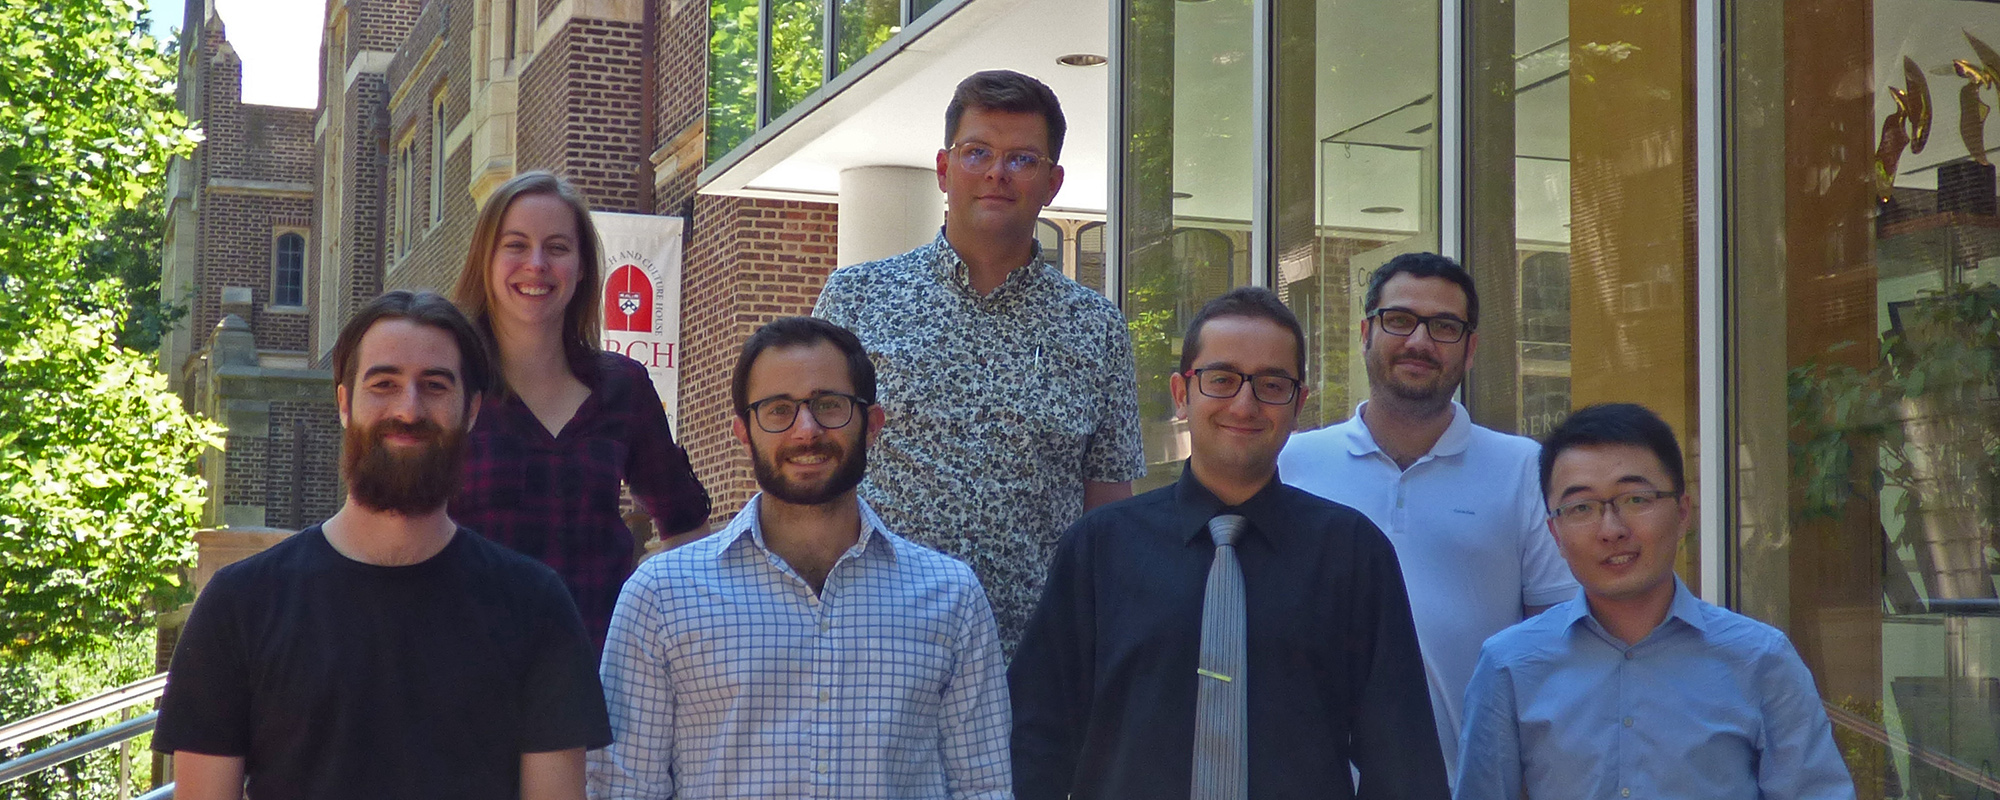 APPC's new postdoctoral fellows in the Science of Science Communicatinon are Daniel Chapman, Kathryn Haglin, Matt Motta, Dominik Stecula, Ozan Kuru, Yotam Ophir, and Hang Lu.